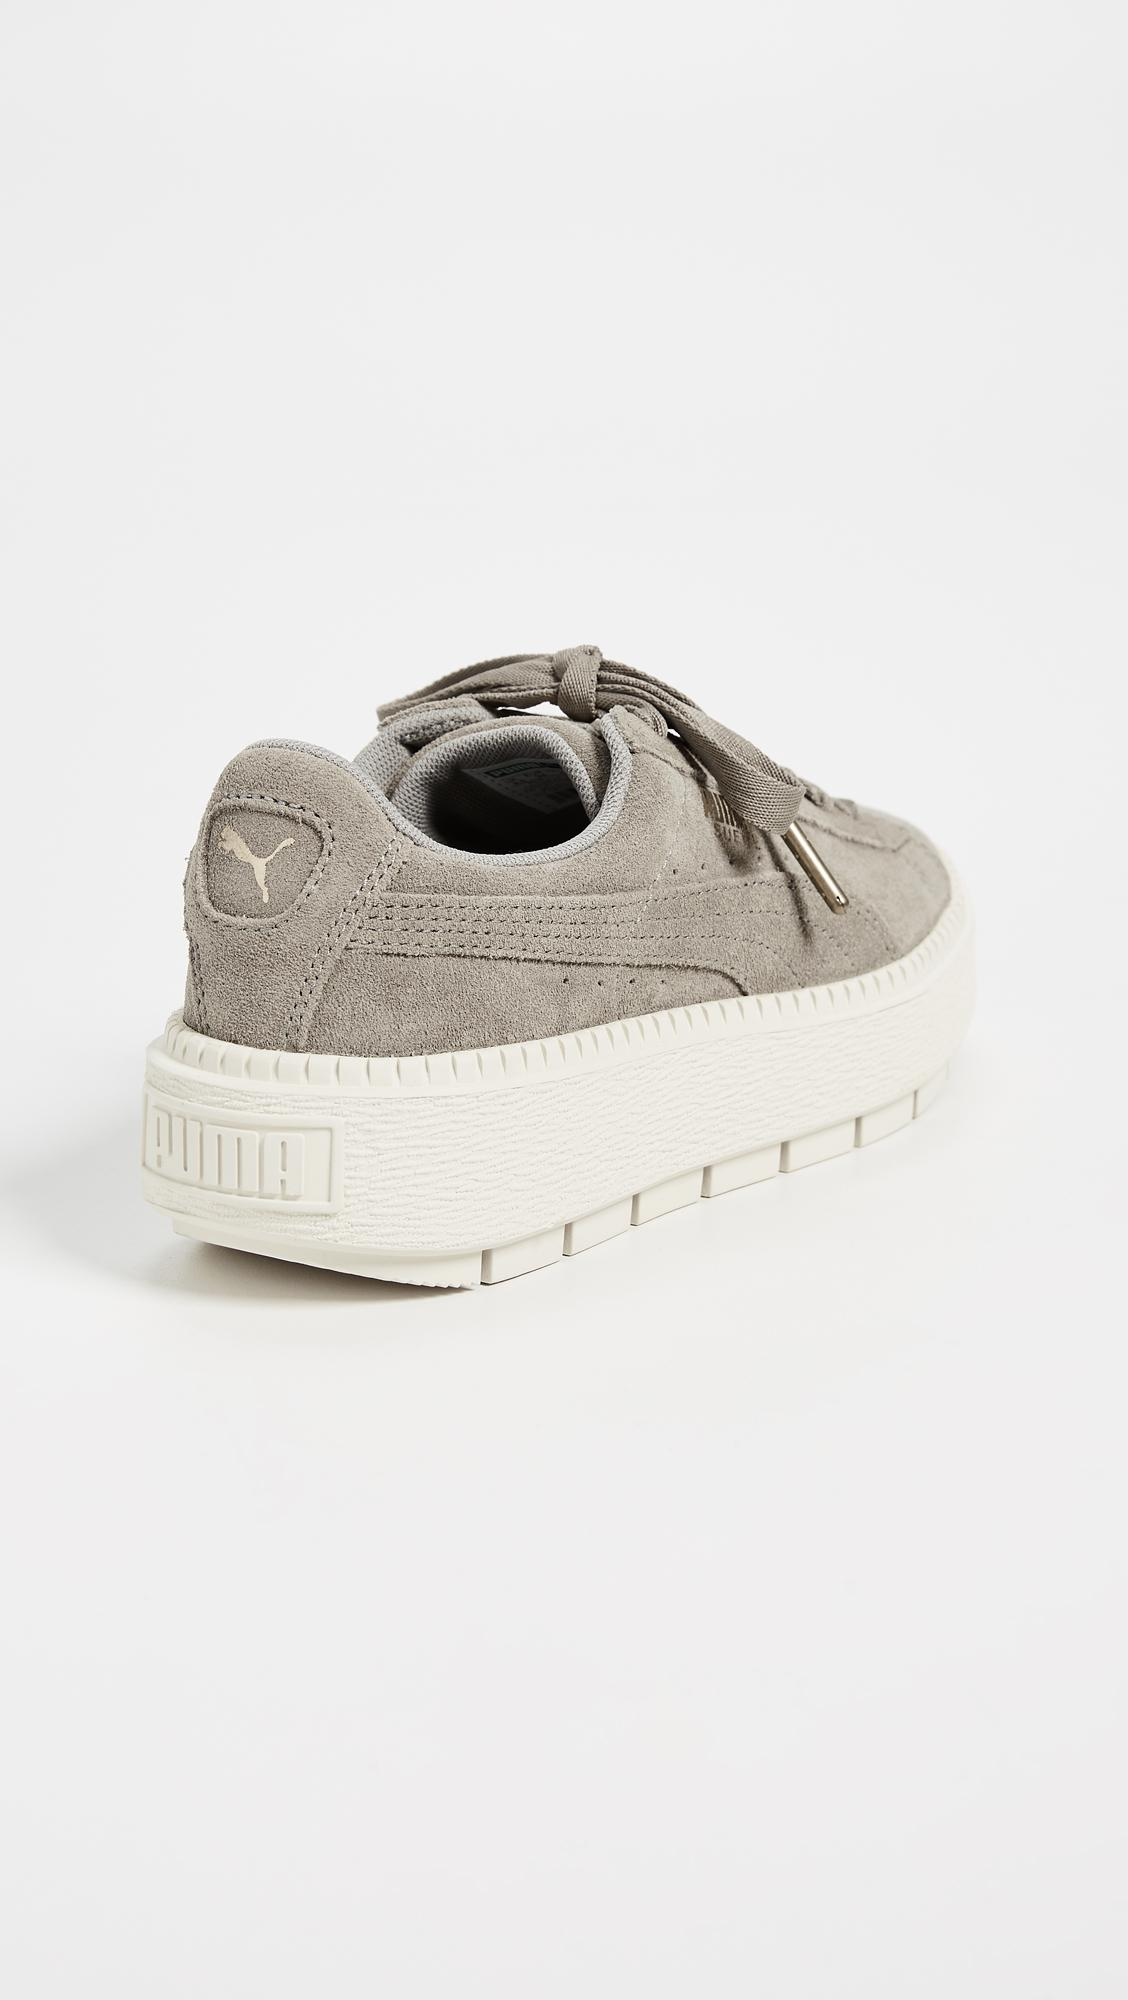 b9ee69f70d3d Gallery. Previously sold at  Shopbop · Women s Platform Sneakers Women s  Puma ...